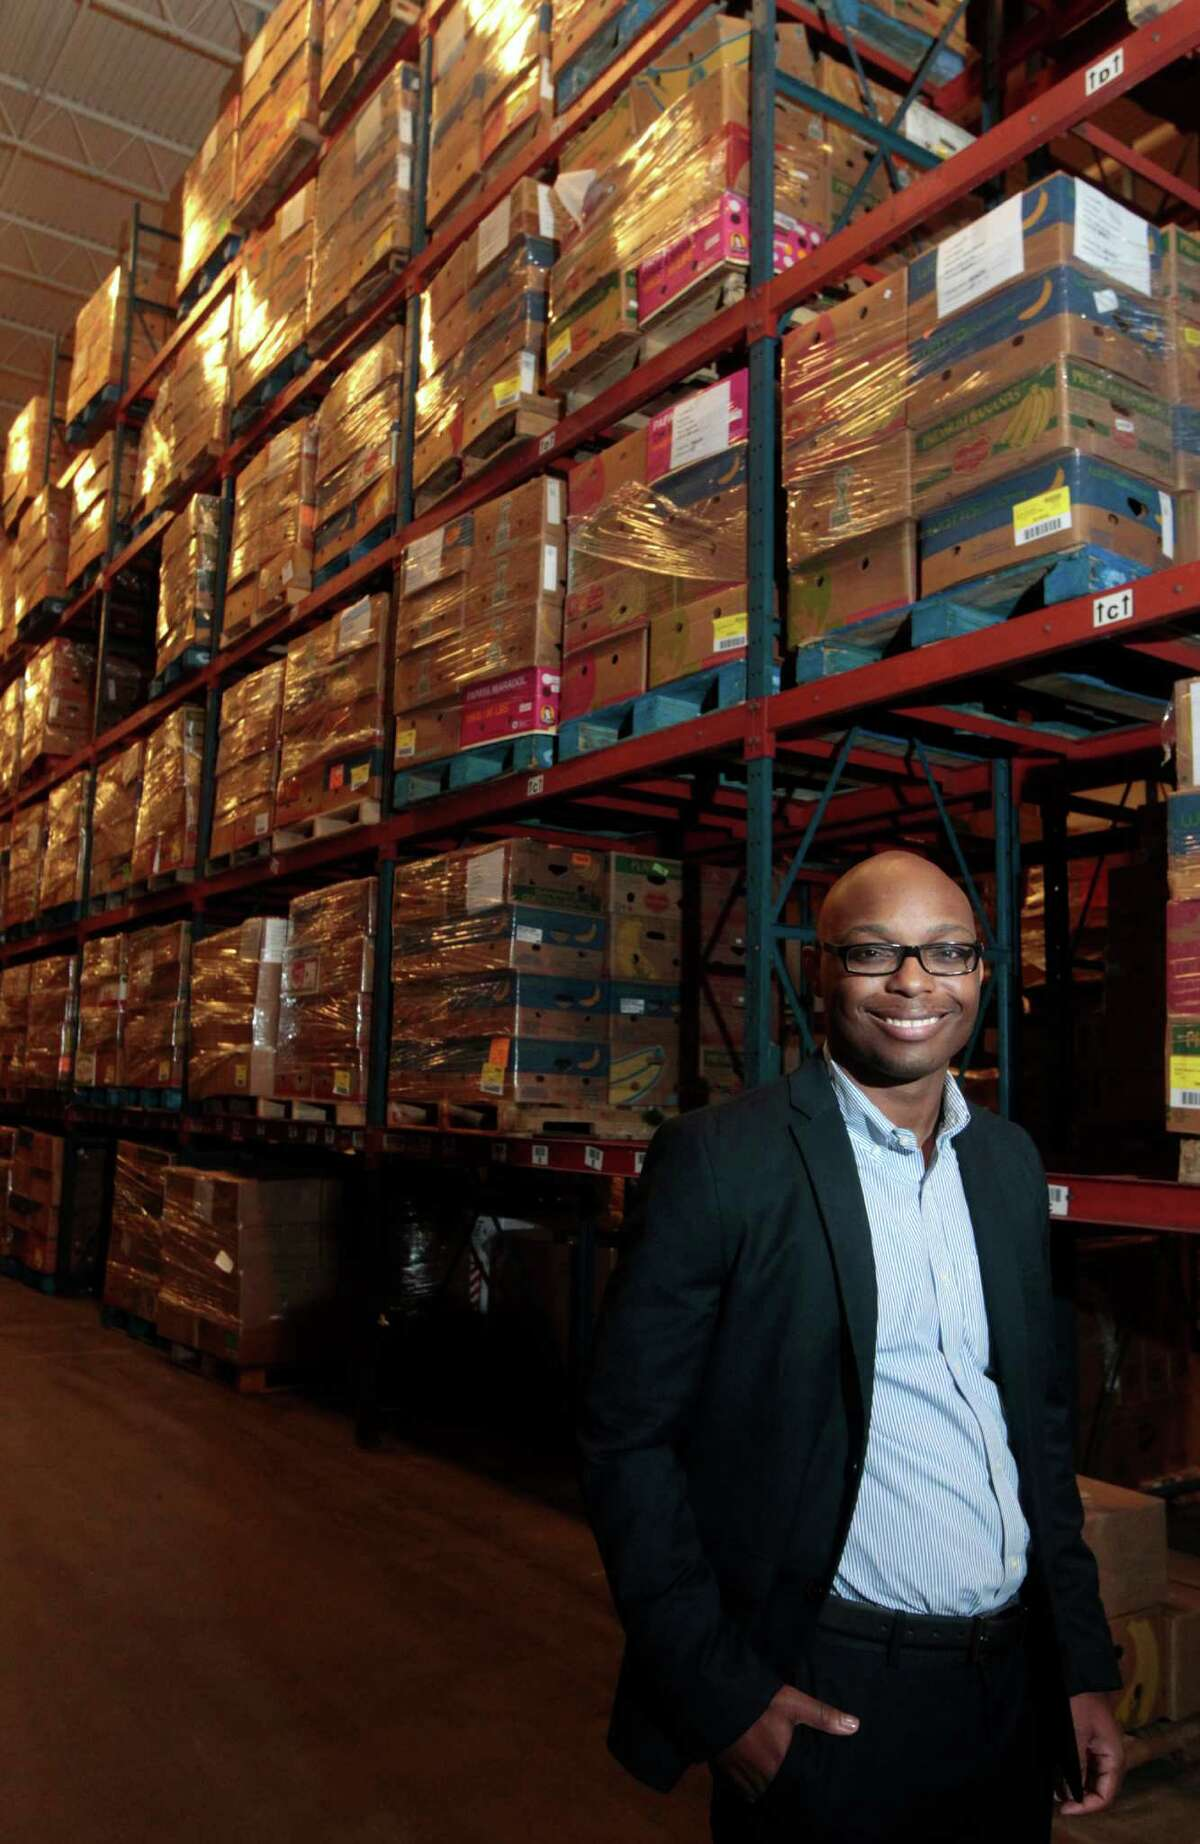 Reginald Young poses for a portrait at the Houston Food Bank on Wednesday, Feb. 26, 2014, in Houston. ( J. Patric Schneider / For the Chronicle )